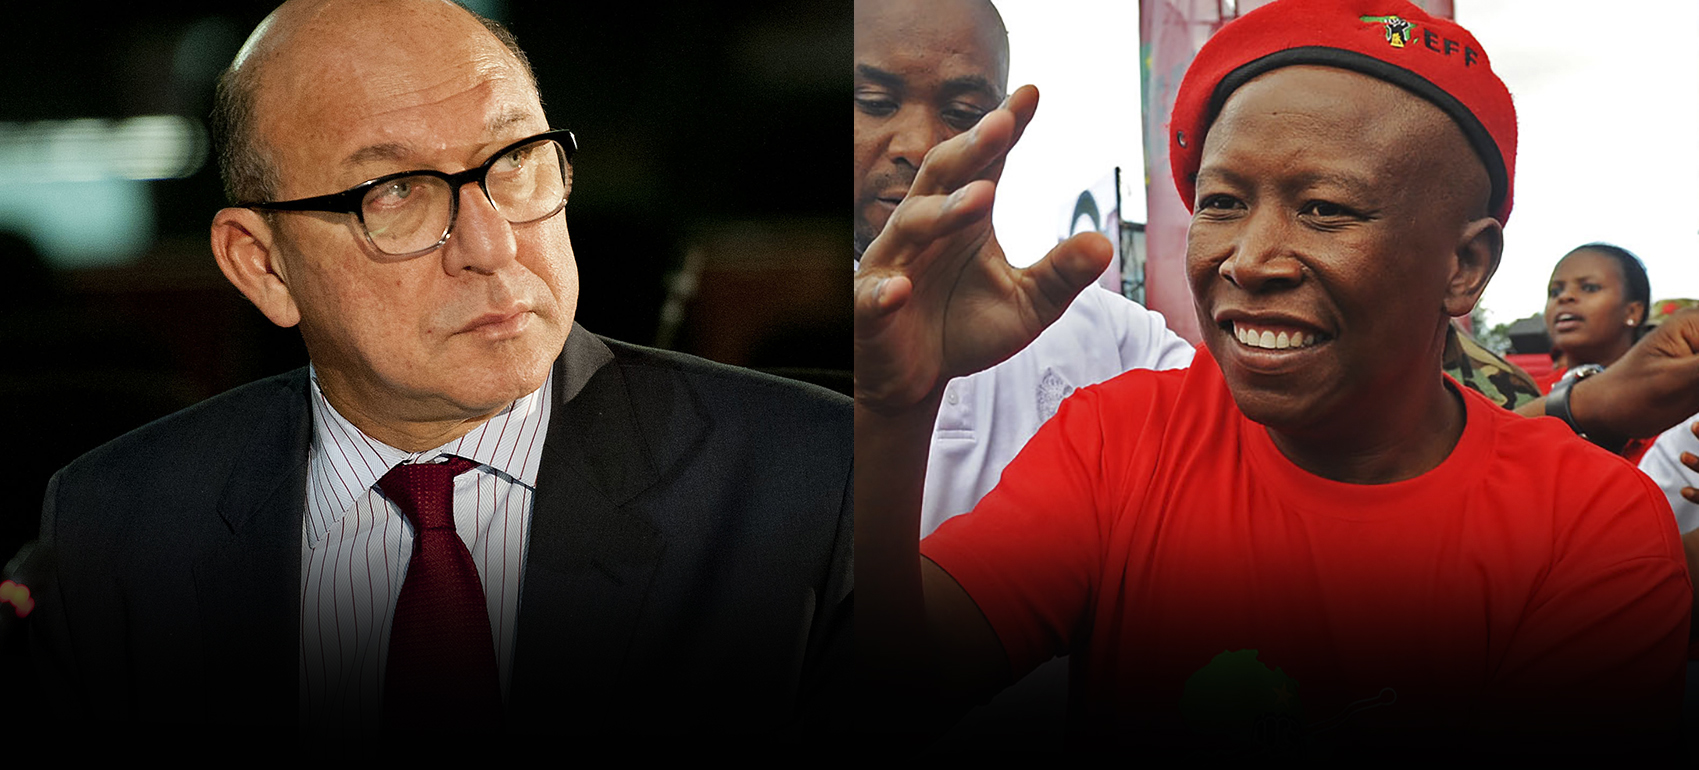 The Manuel vs Malema ruling has legal consequences for fake news